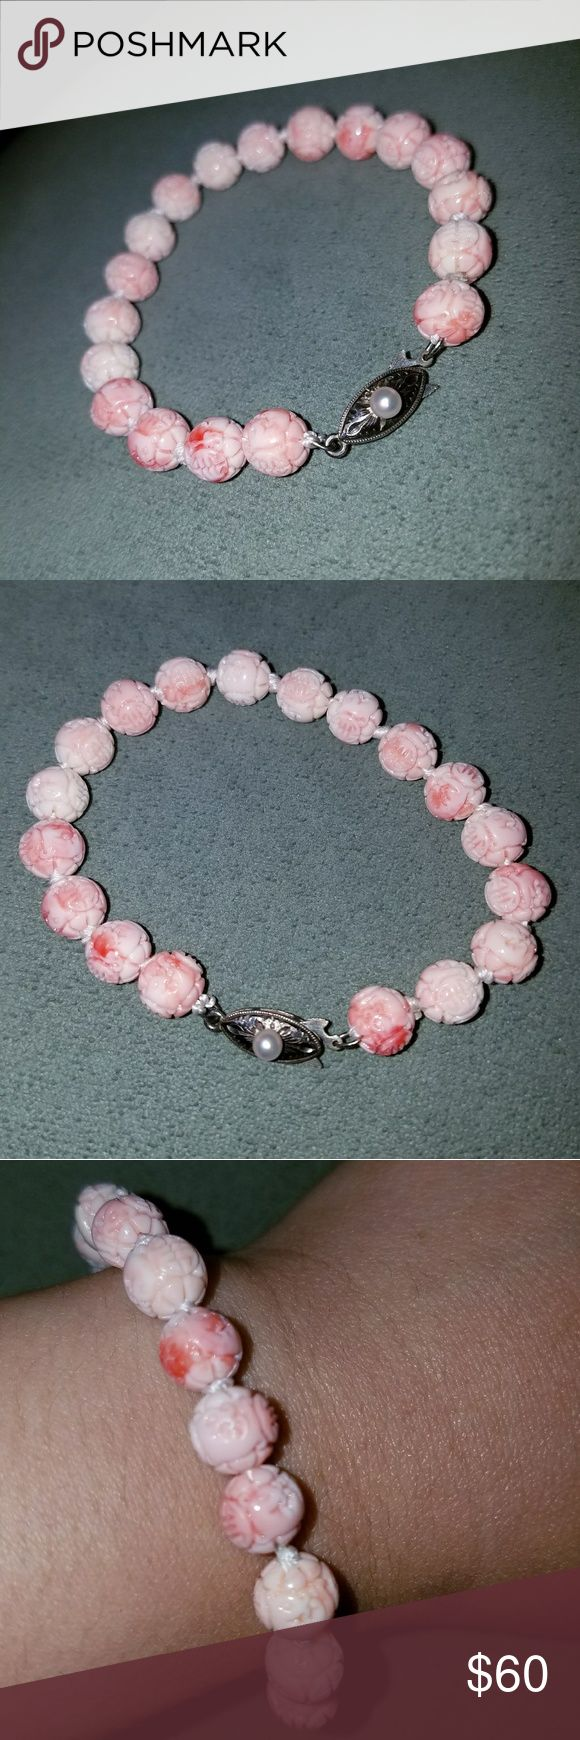 Carved coral pink conch shell pearl bracelet Carved natural pink conch shell bead bracelet with pearl and silver clasp. In excellent condition with no crack. Looks very close to angel skin coral beads. PRICE FIRM Vintage Jewelry Bracelets